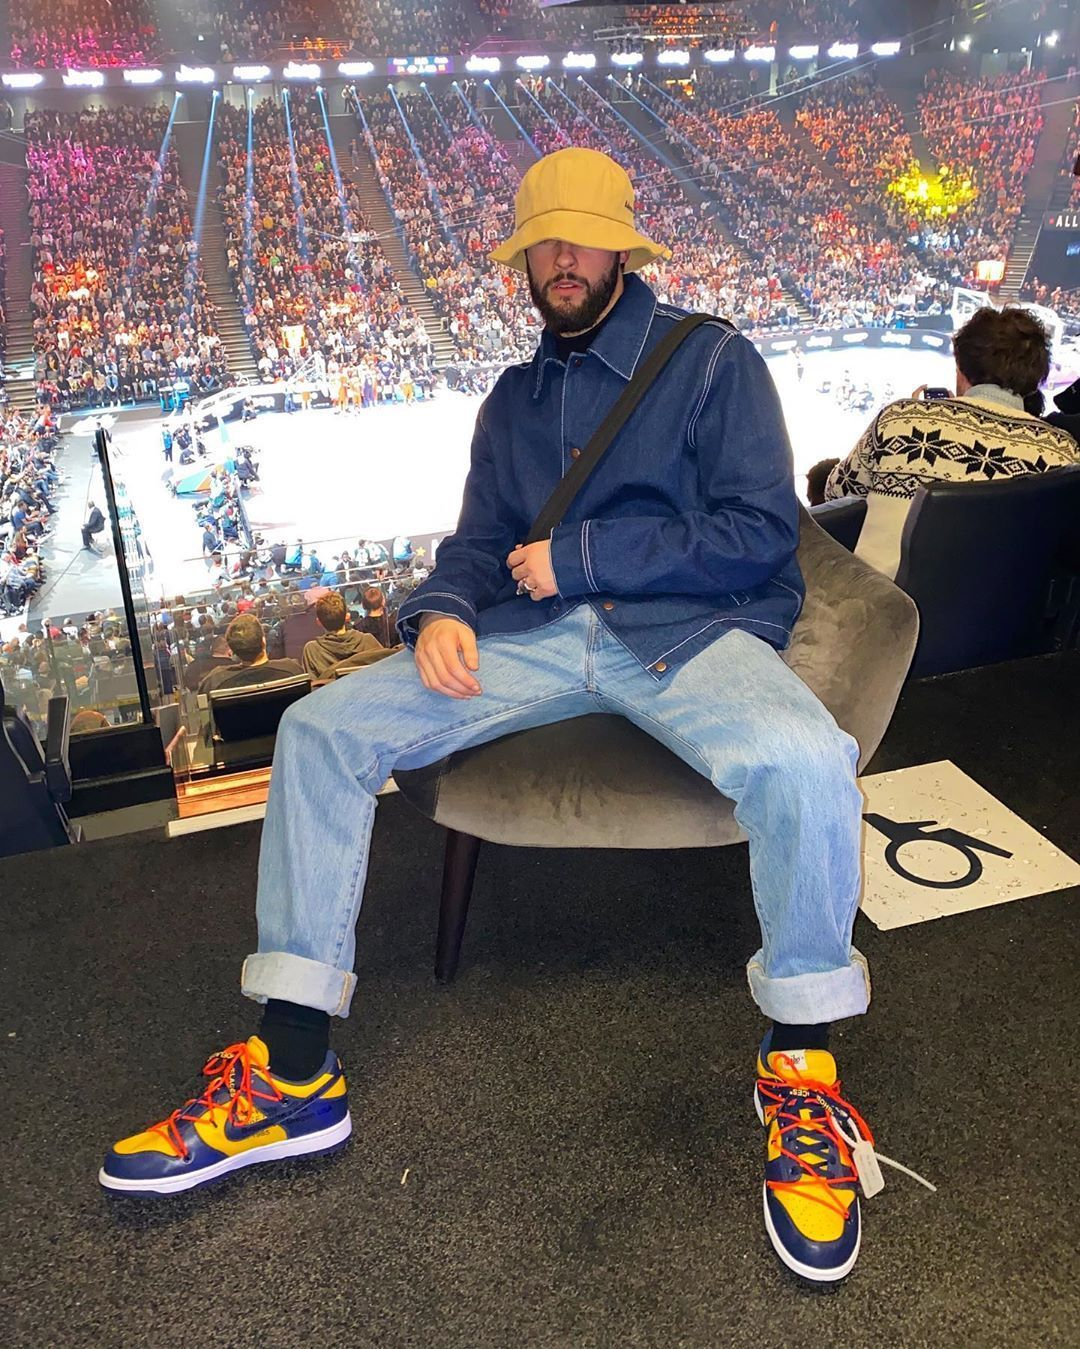 Streetwear Bearded Guy on Instagram  All Star Game 2019  Do you like basketball  Or whats your fav sport        Streetwear Bearded Guy on Instagram  All Star Game 2019...